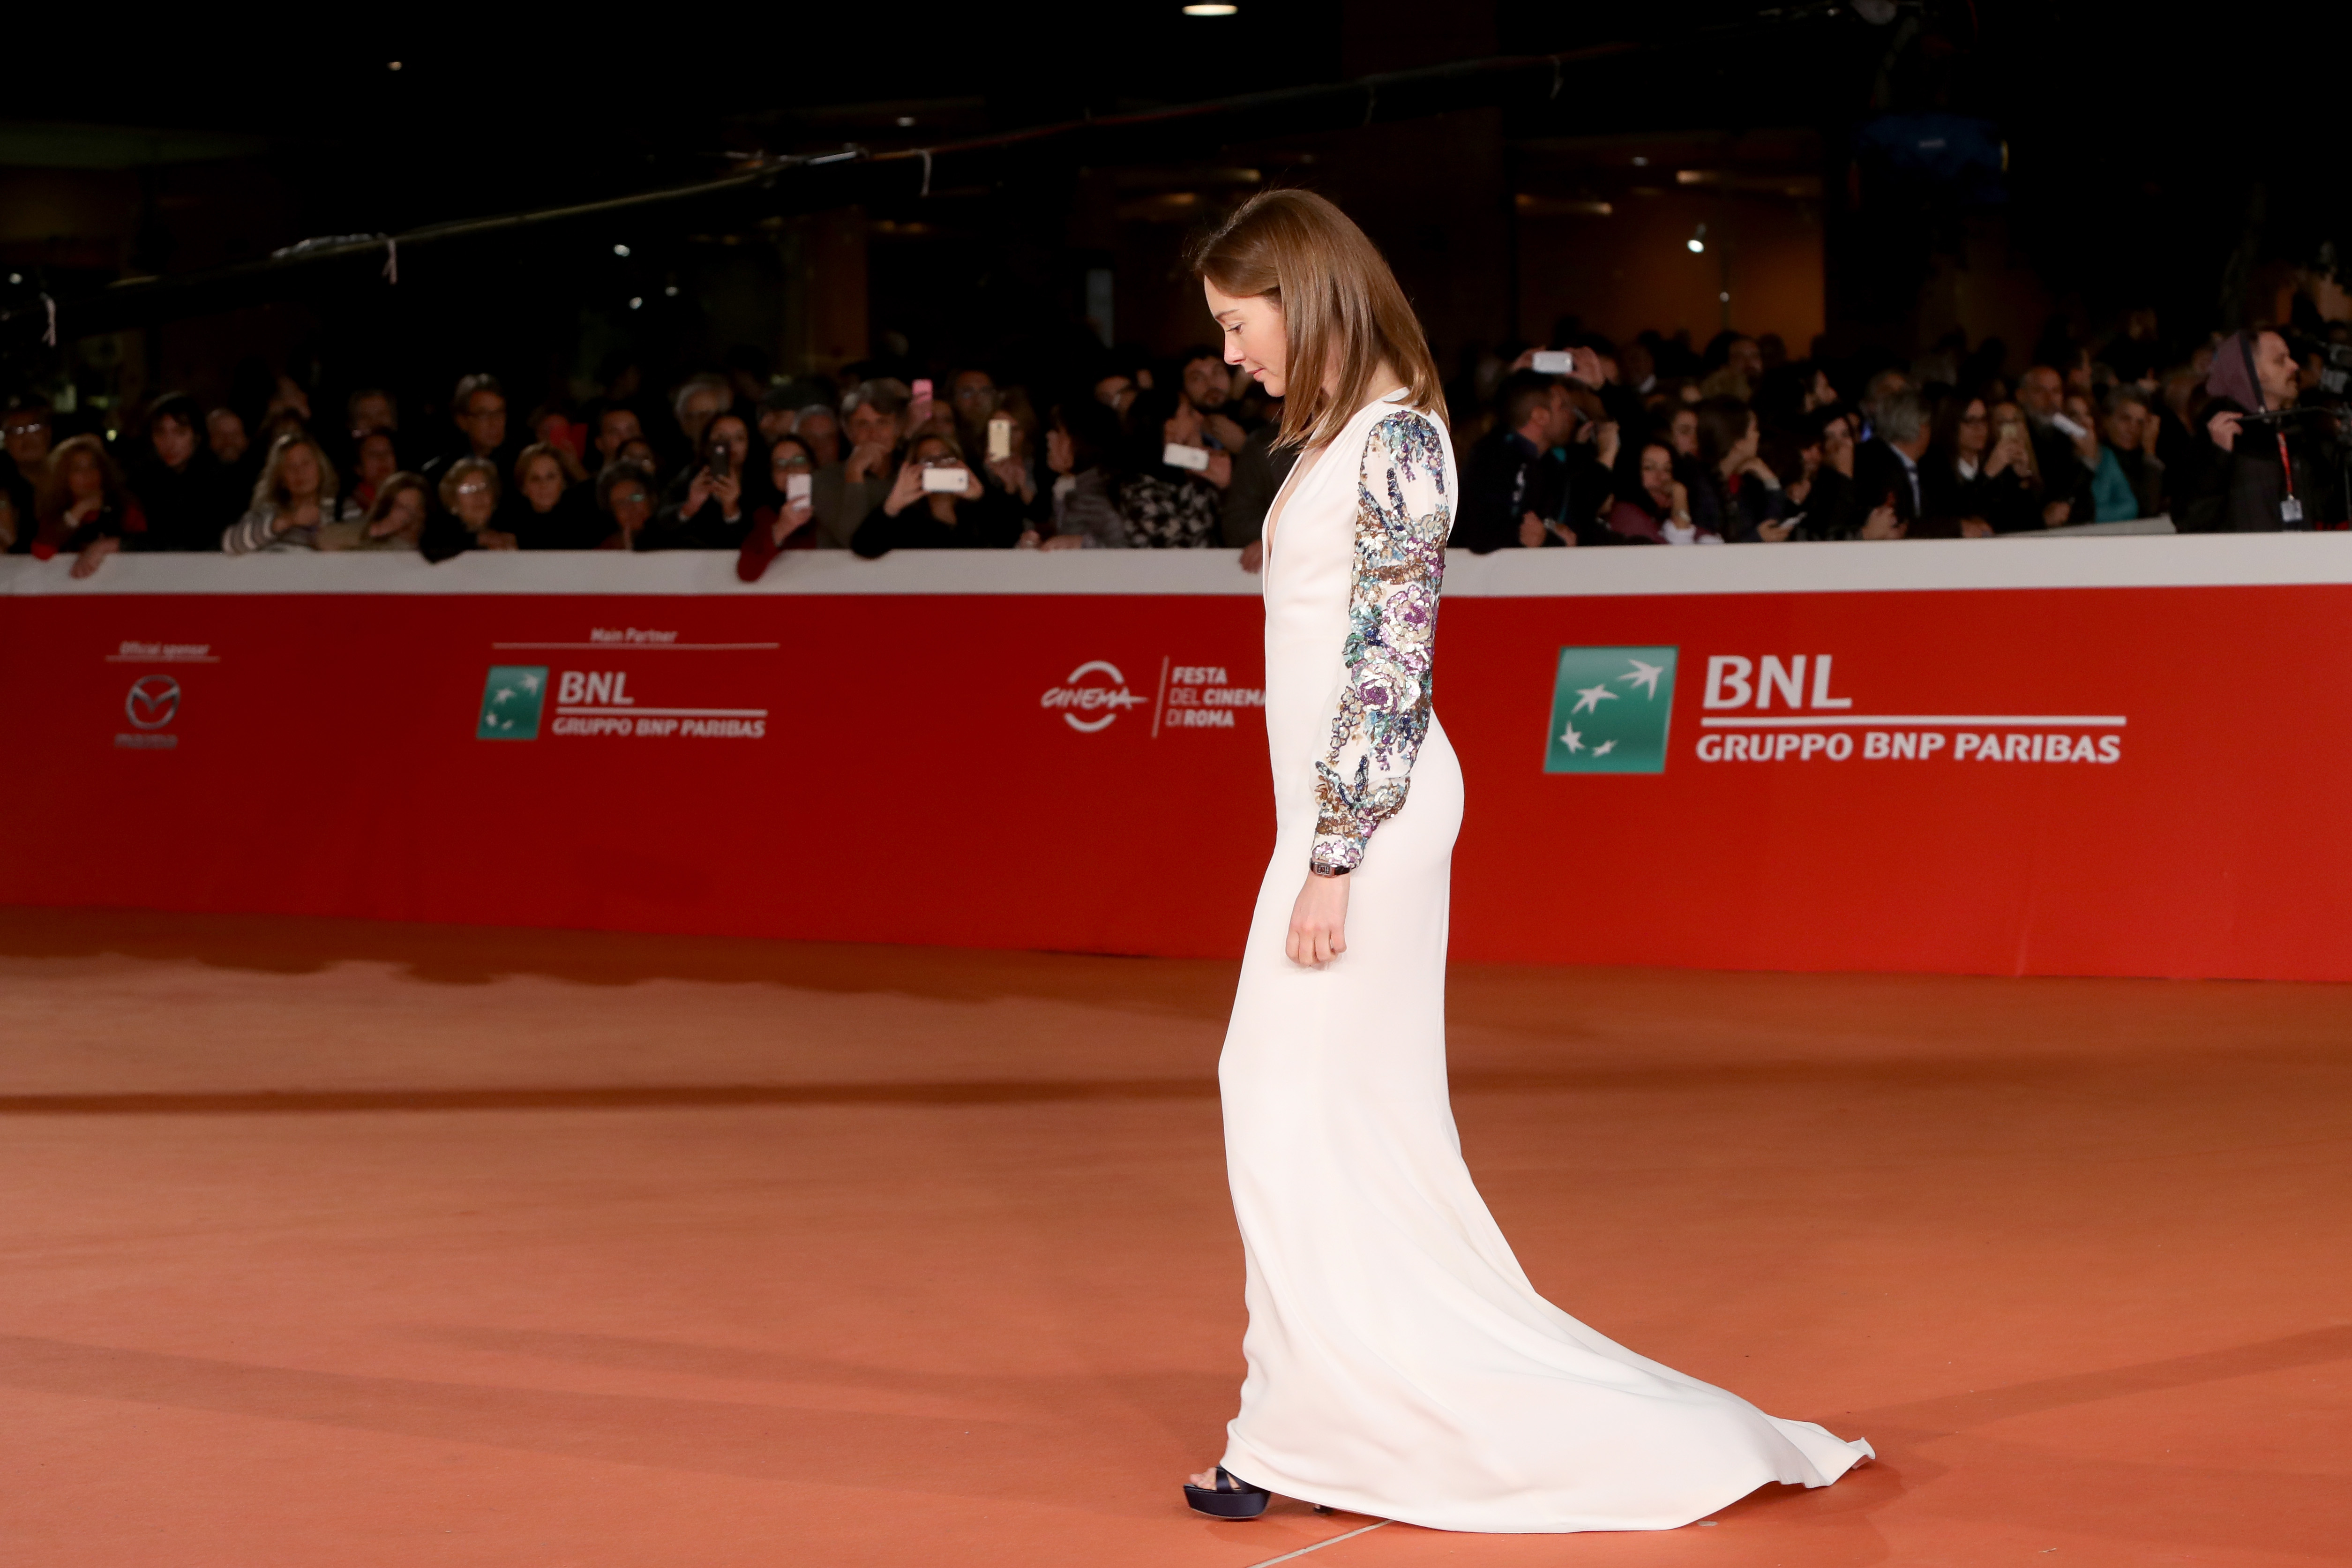 walks a red carpet for '7 Minuti' during the 11th Rome Film Festival at Auditorium Parco Della Musica on October 21, 2016 in Rome, Italy.